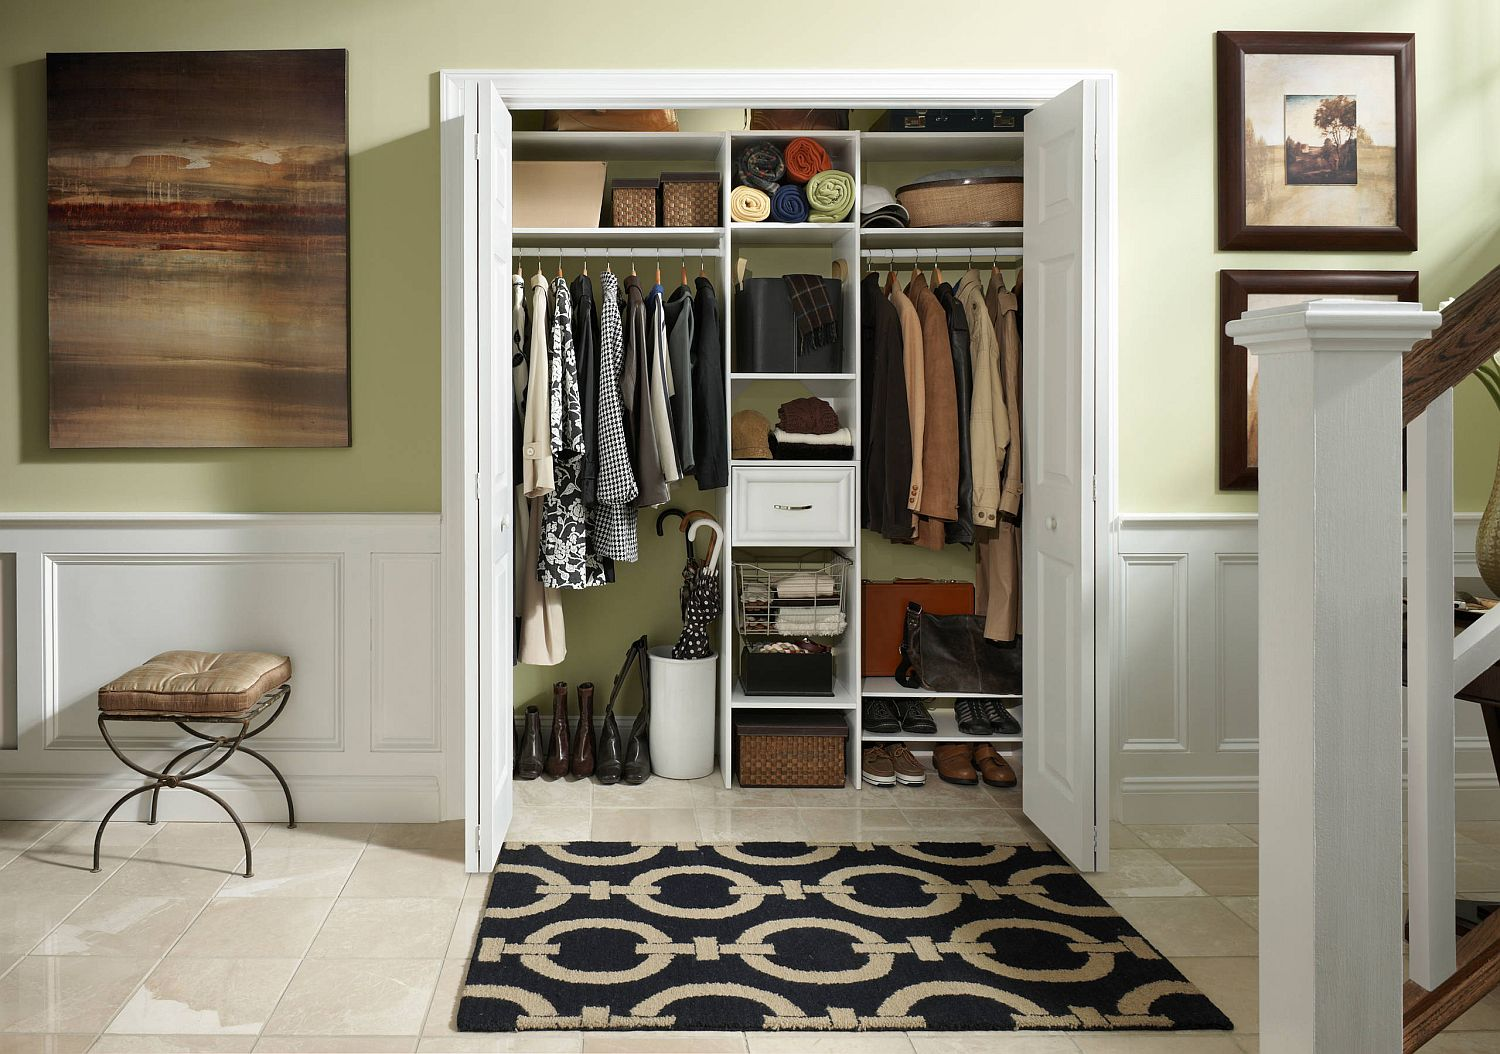 Modular closet soltions for those who wish to maximize space